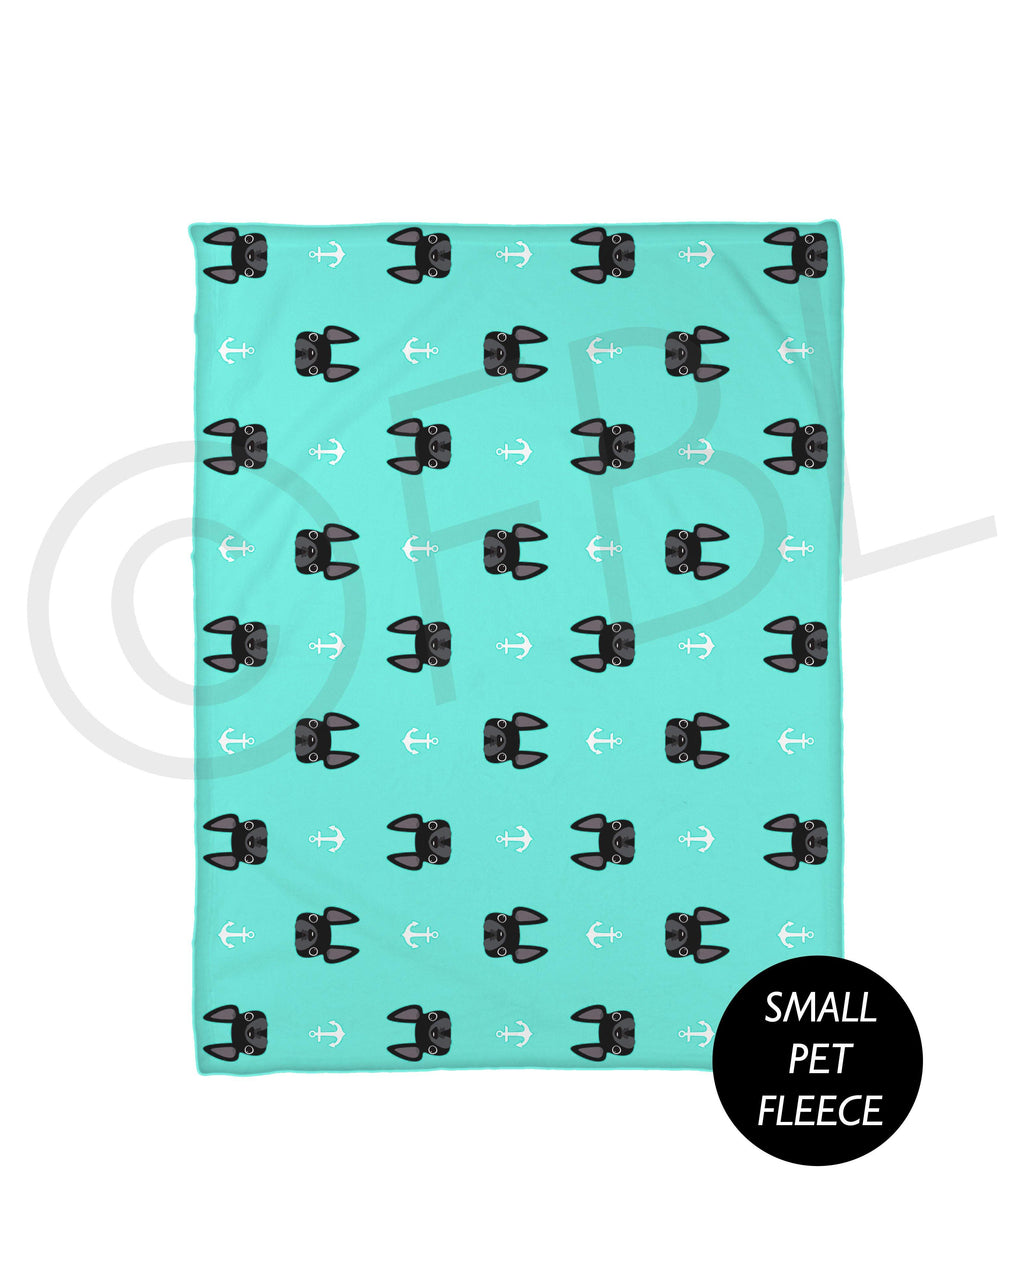 Anchors Black French Bulldog Fleece Blanket - Small